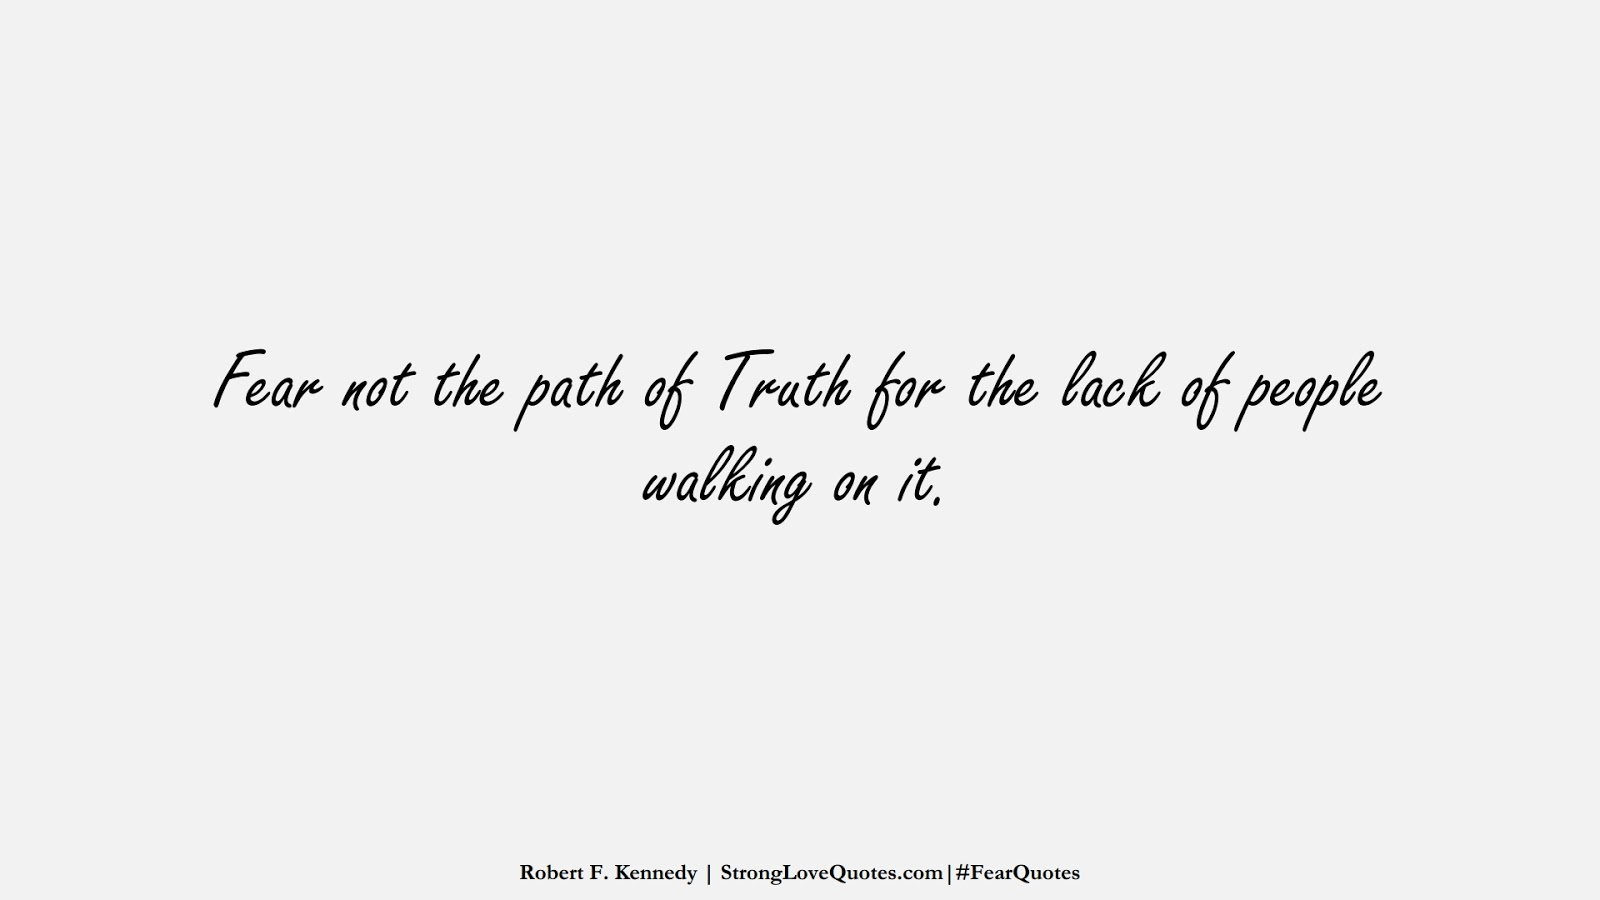 Fear not the path of Truth for the lack of people walking on it. (Robert F. Kennedy);  #FearQuotes